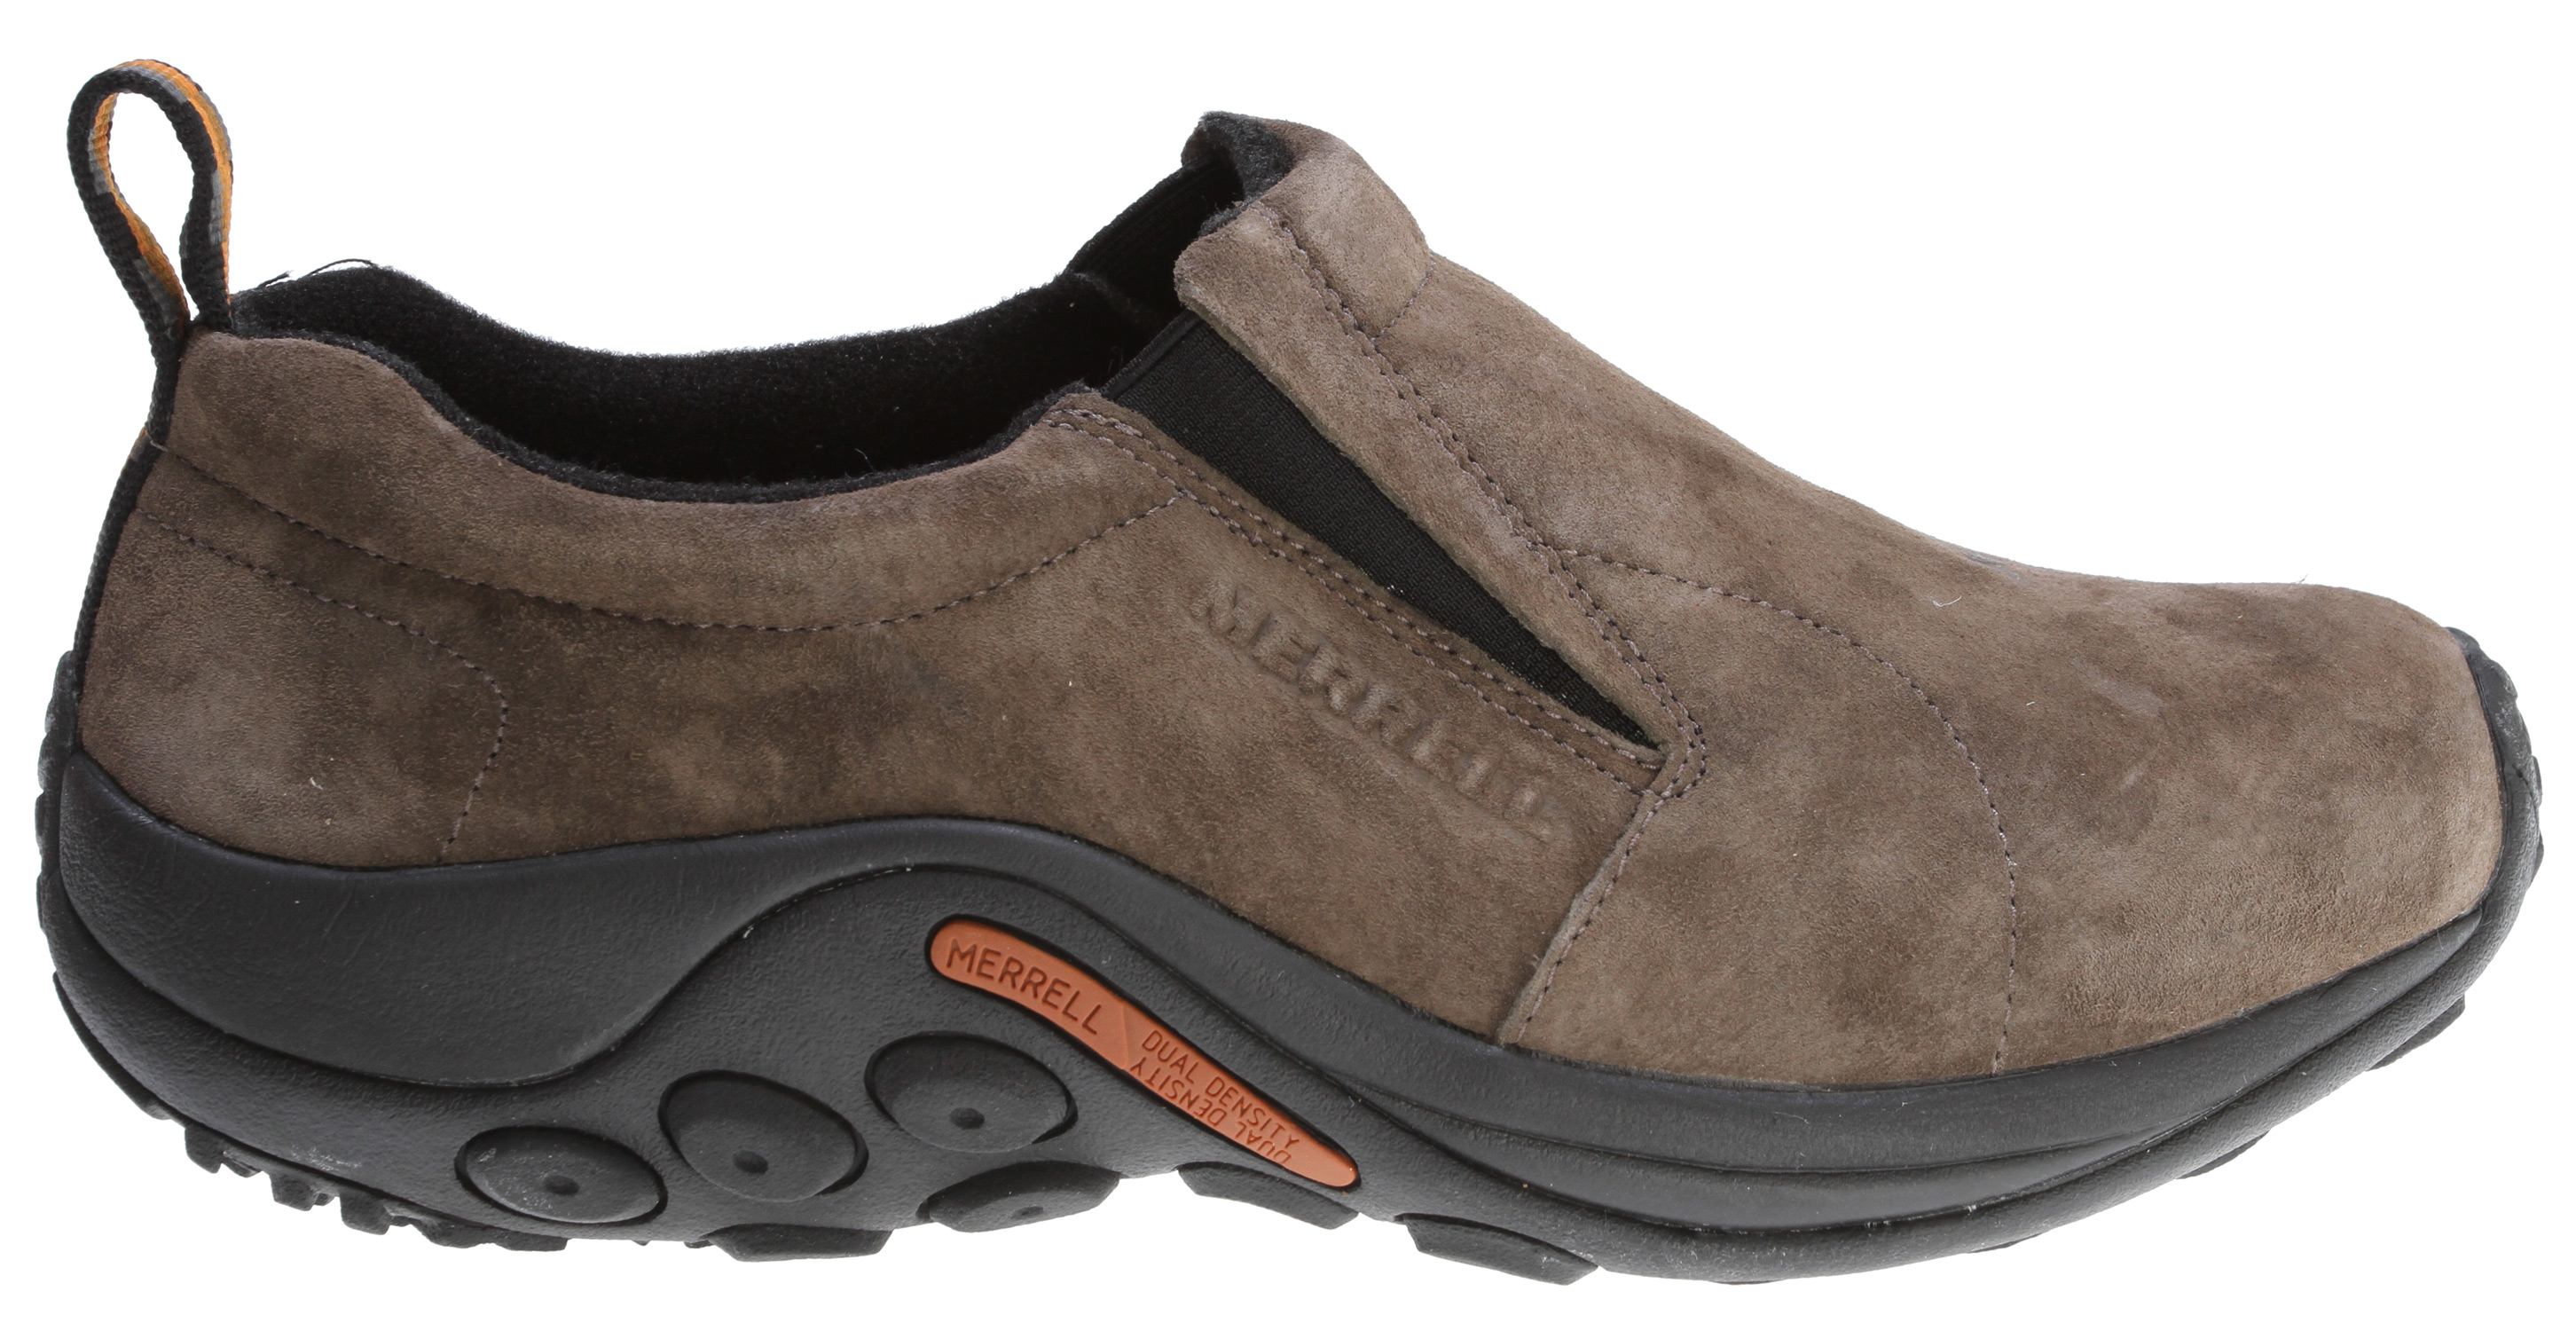 Slip-on, comfortable, aftersport moc .Key Features of the Merrell Jungle Moc Wide Shoes: strobel construction offers flexibility and comfort pig suede leather upper lining treated with aegis® antimicrobial solution ortholite® anatomical footbed molded nylon arch shank compression molded eva footframe provides cushioning merrell air cushion in the heel absorbs shock and adds stability merrell jungle runner sole/sticky rubber - $55.95